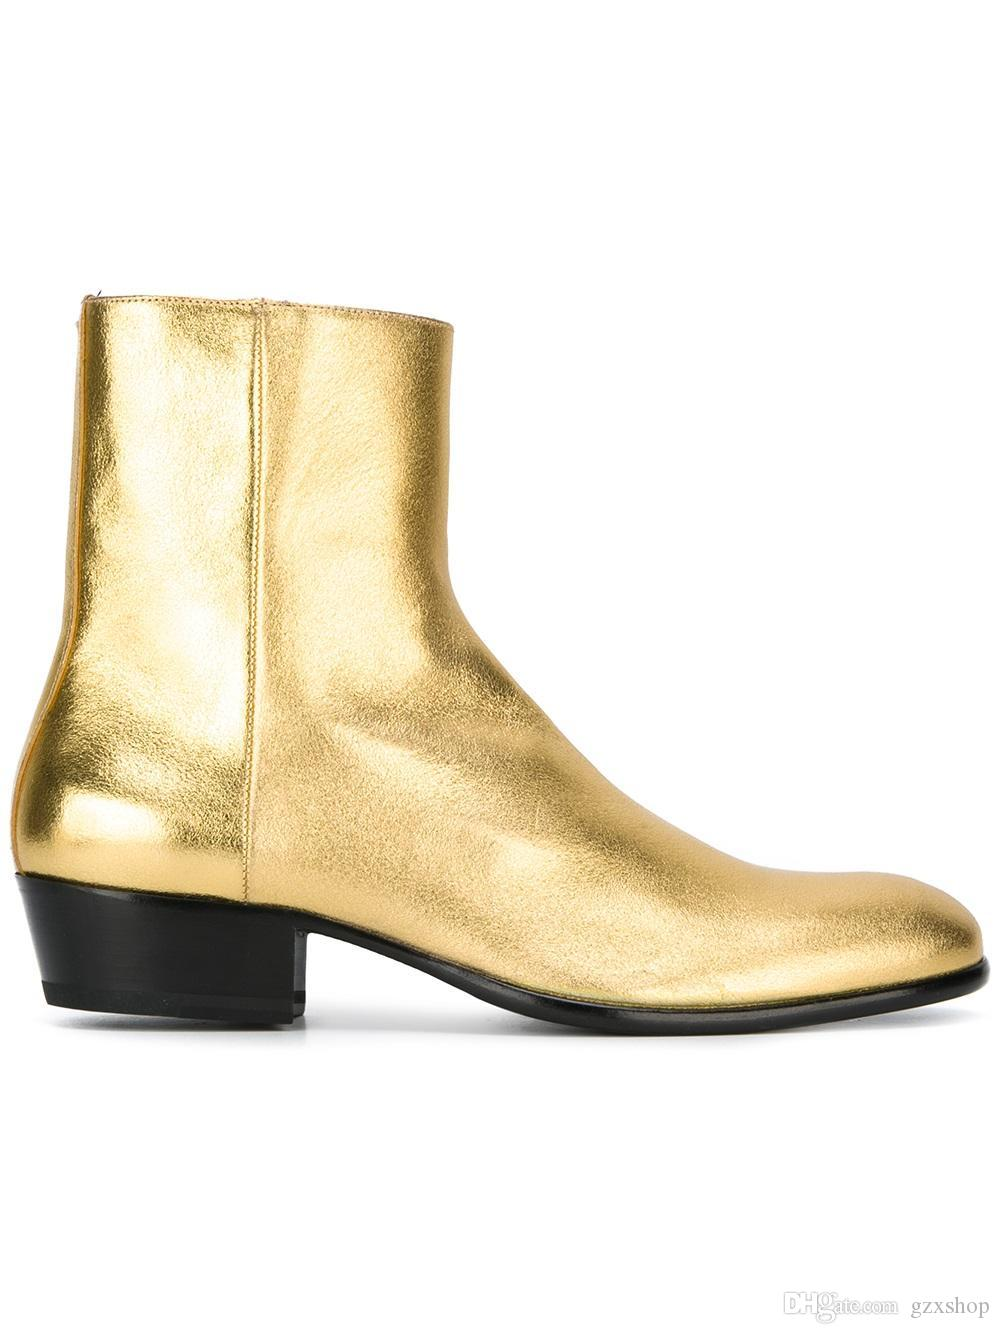 Margiela Shoes Gold Price